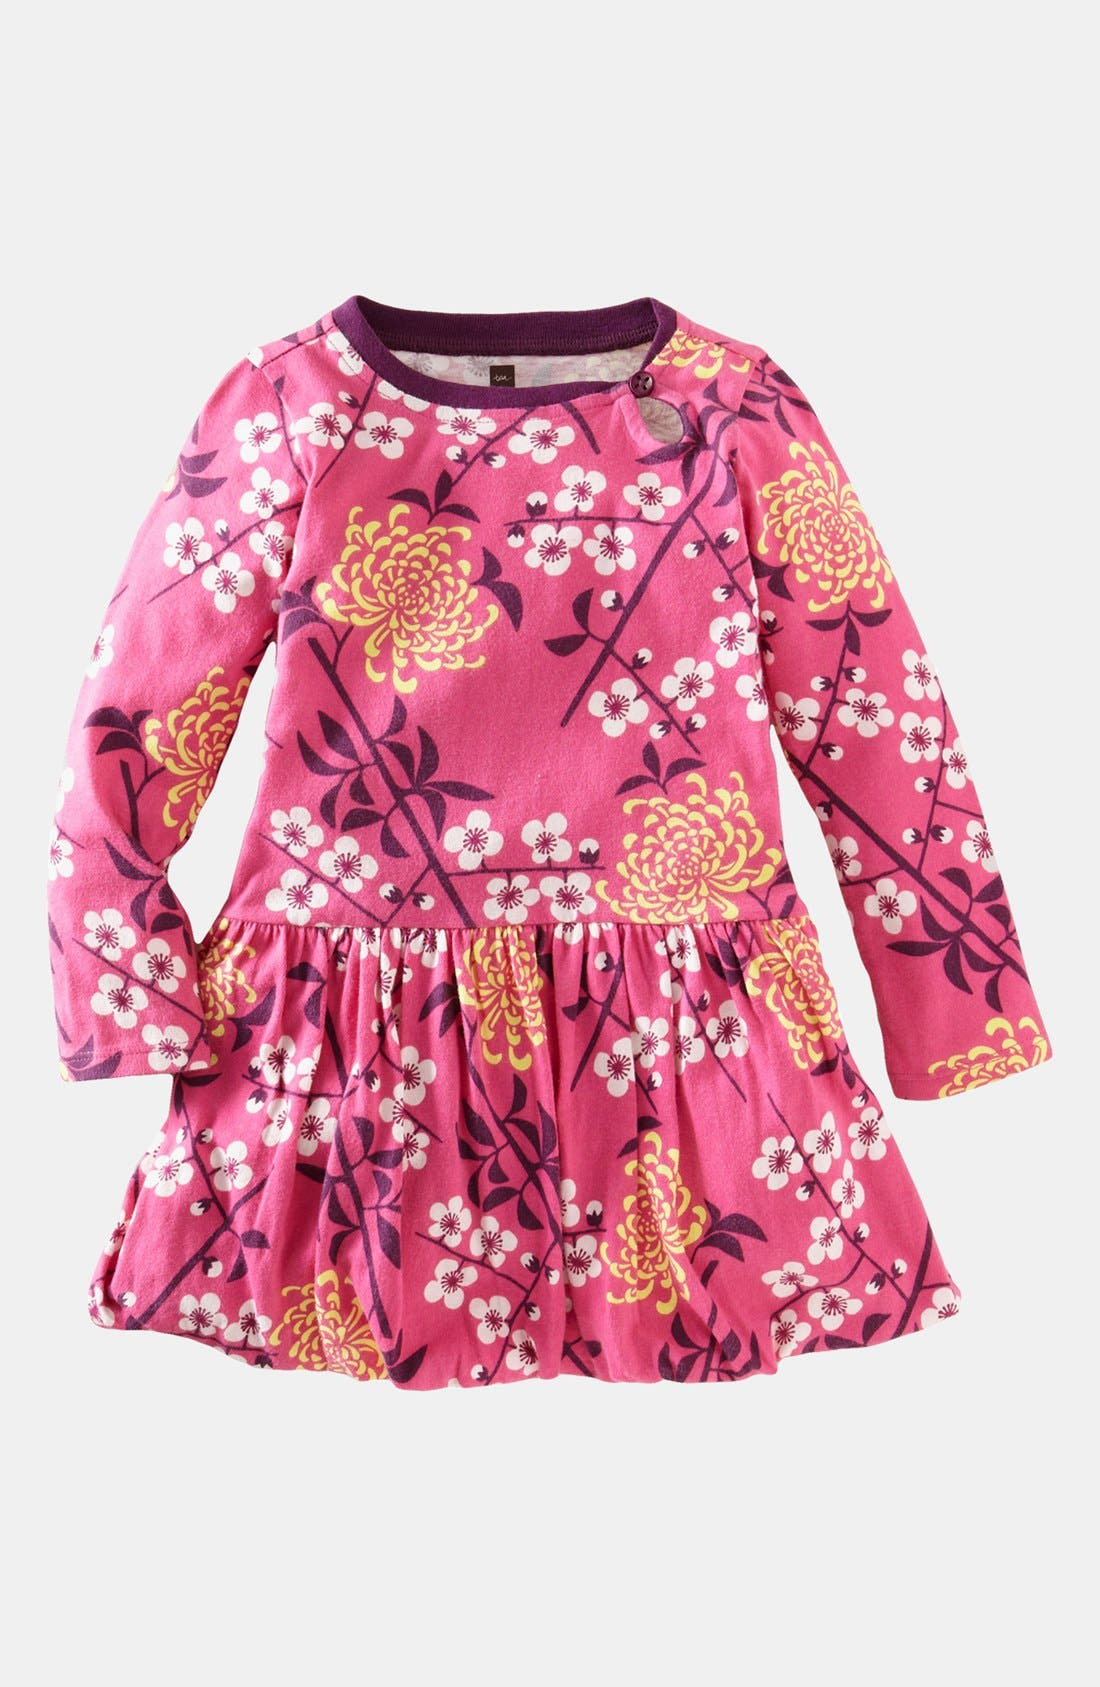 Alternate Image 1 Selected - Tea Collection 'Branch Blossom' Bubble Dress (Big Girls)